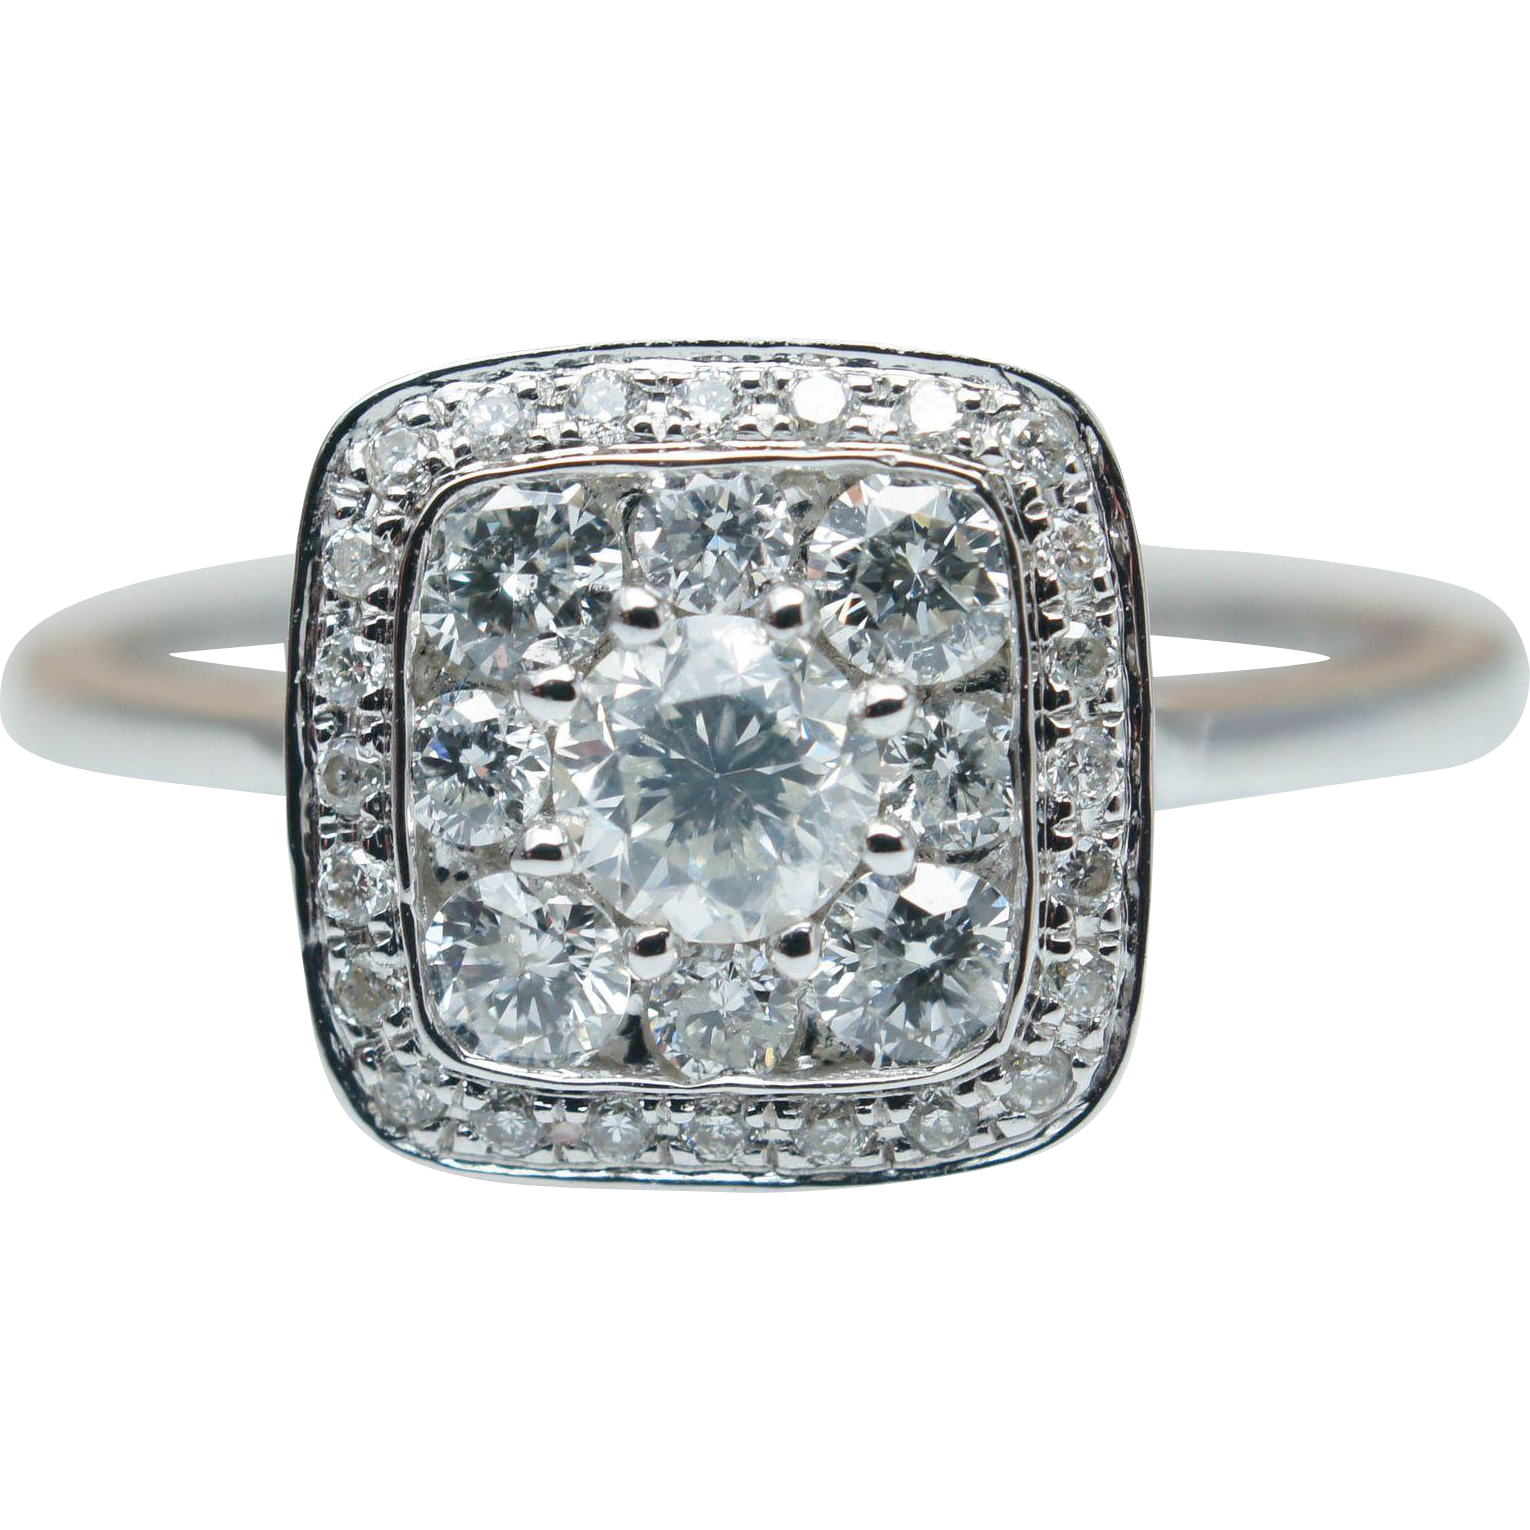 Solitaire Cluster Diamond Engagement Ring in 14k White Gold